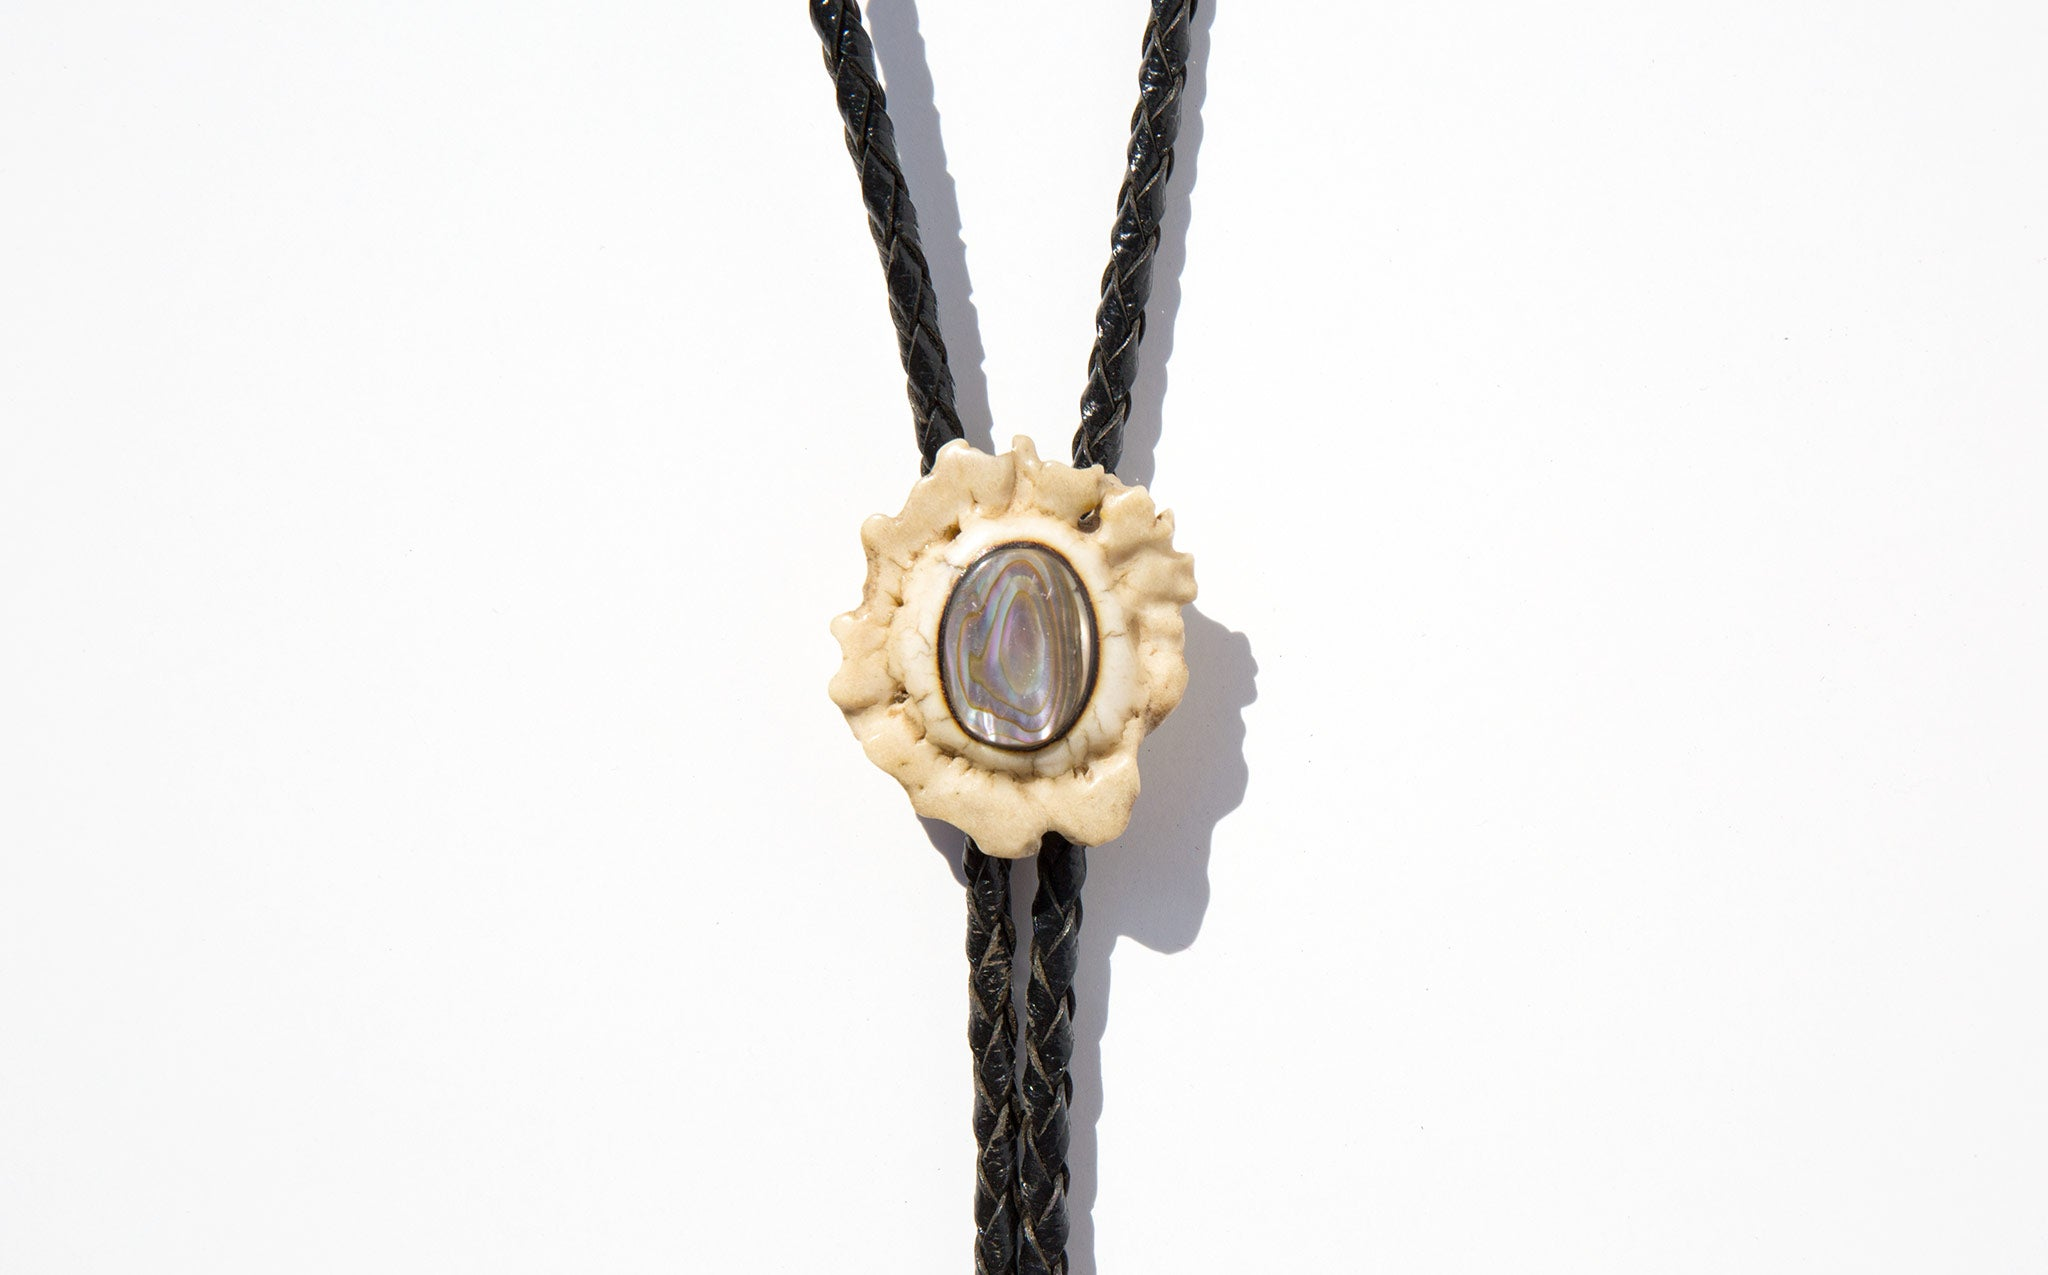 Vintage Bone and Abalone Bolo Tie